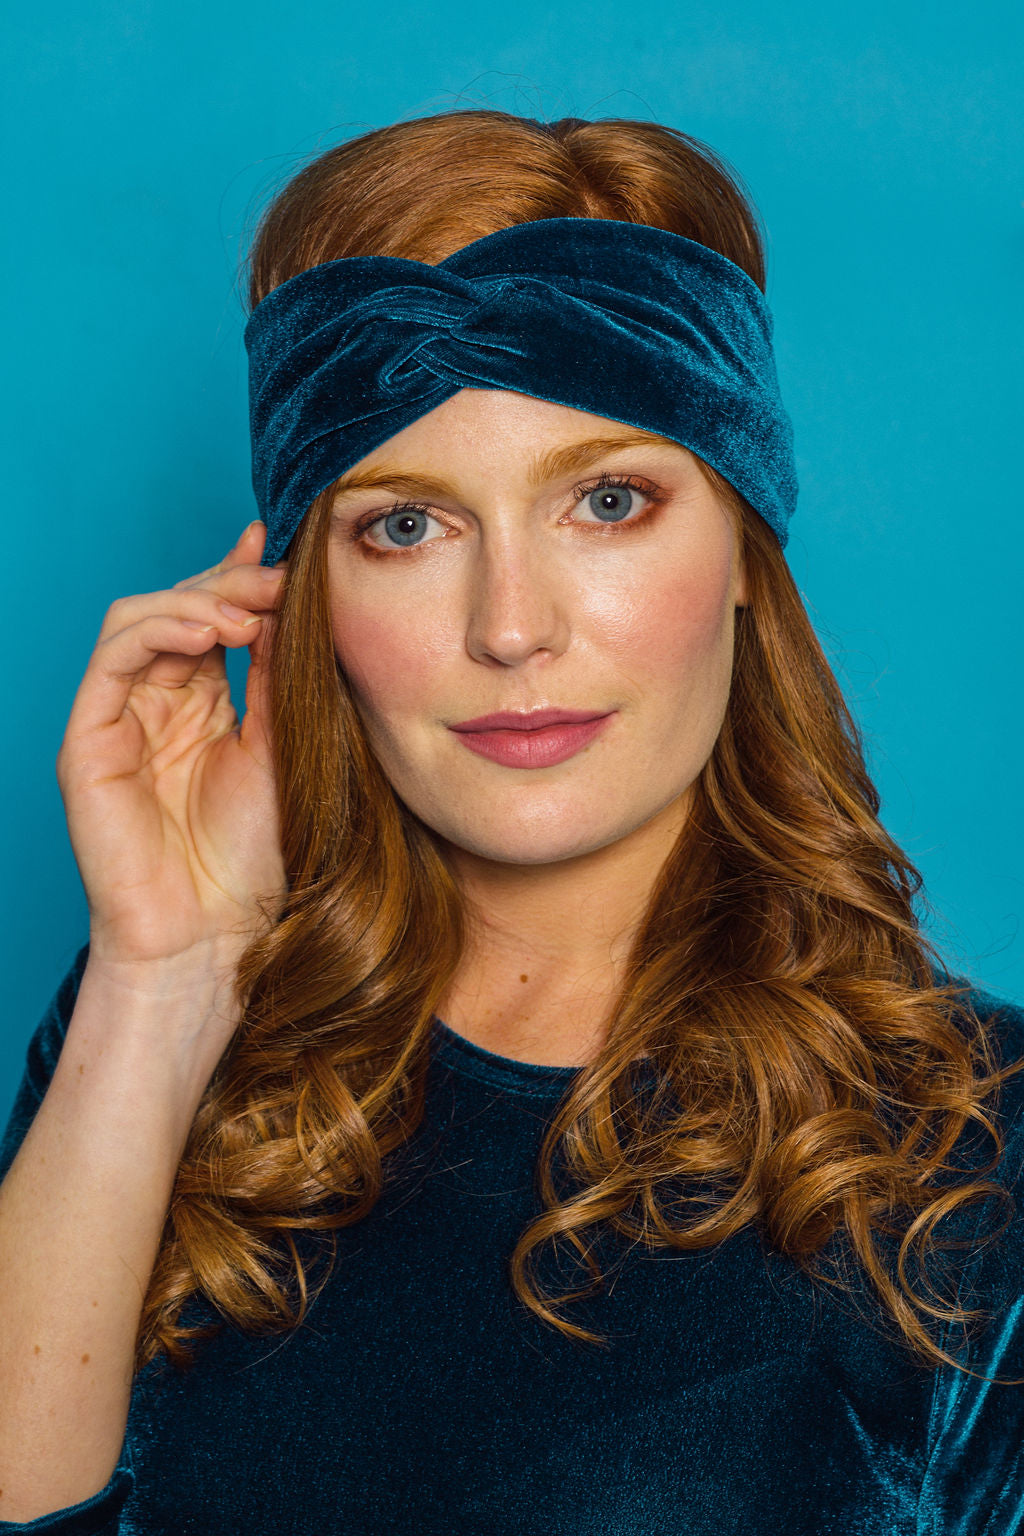 Velvet Headband in Teal - Accessories - Megan Crook